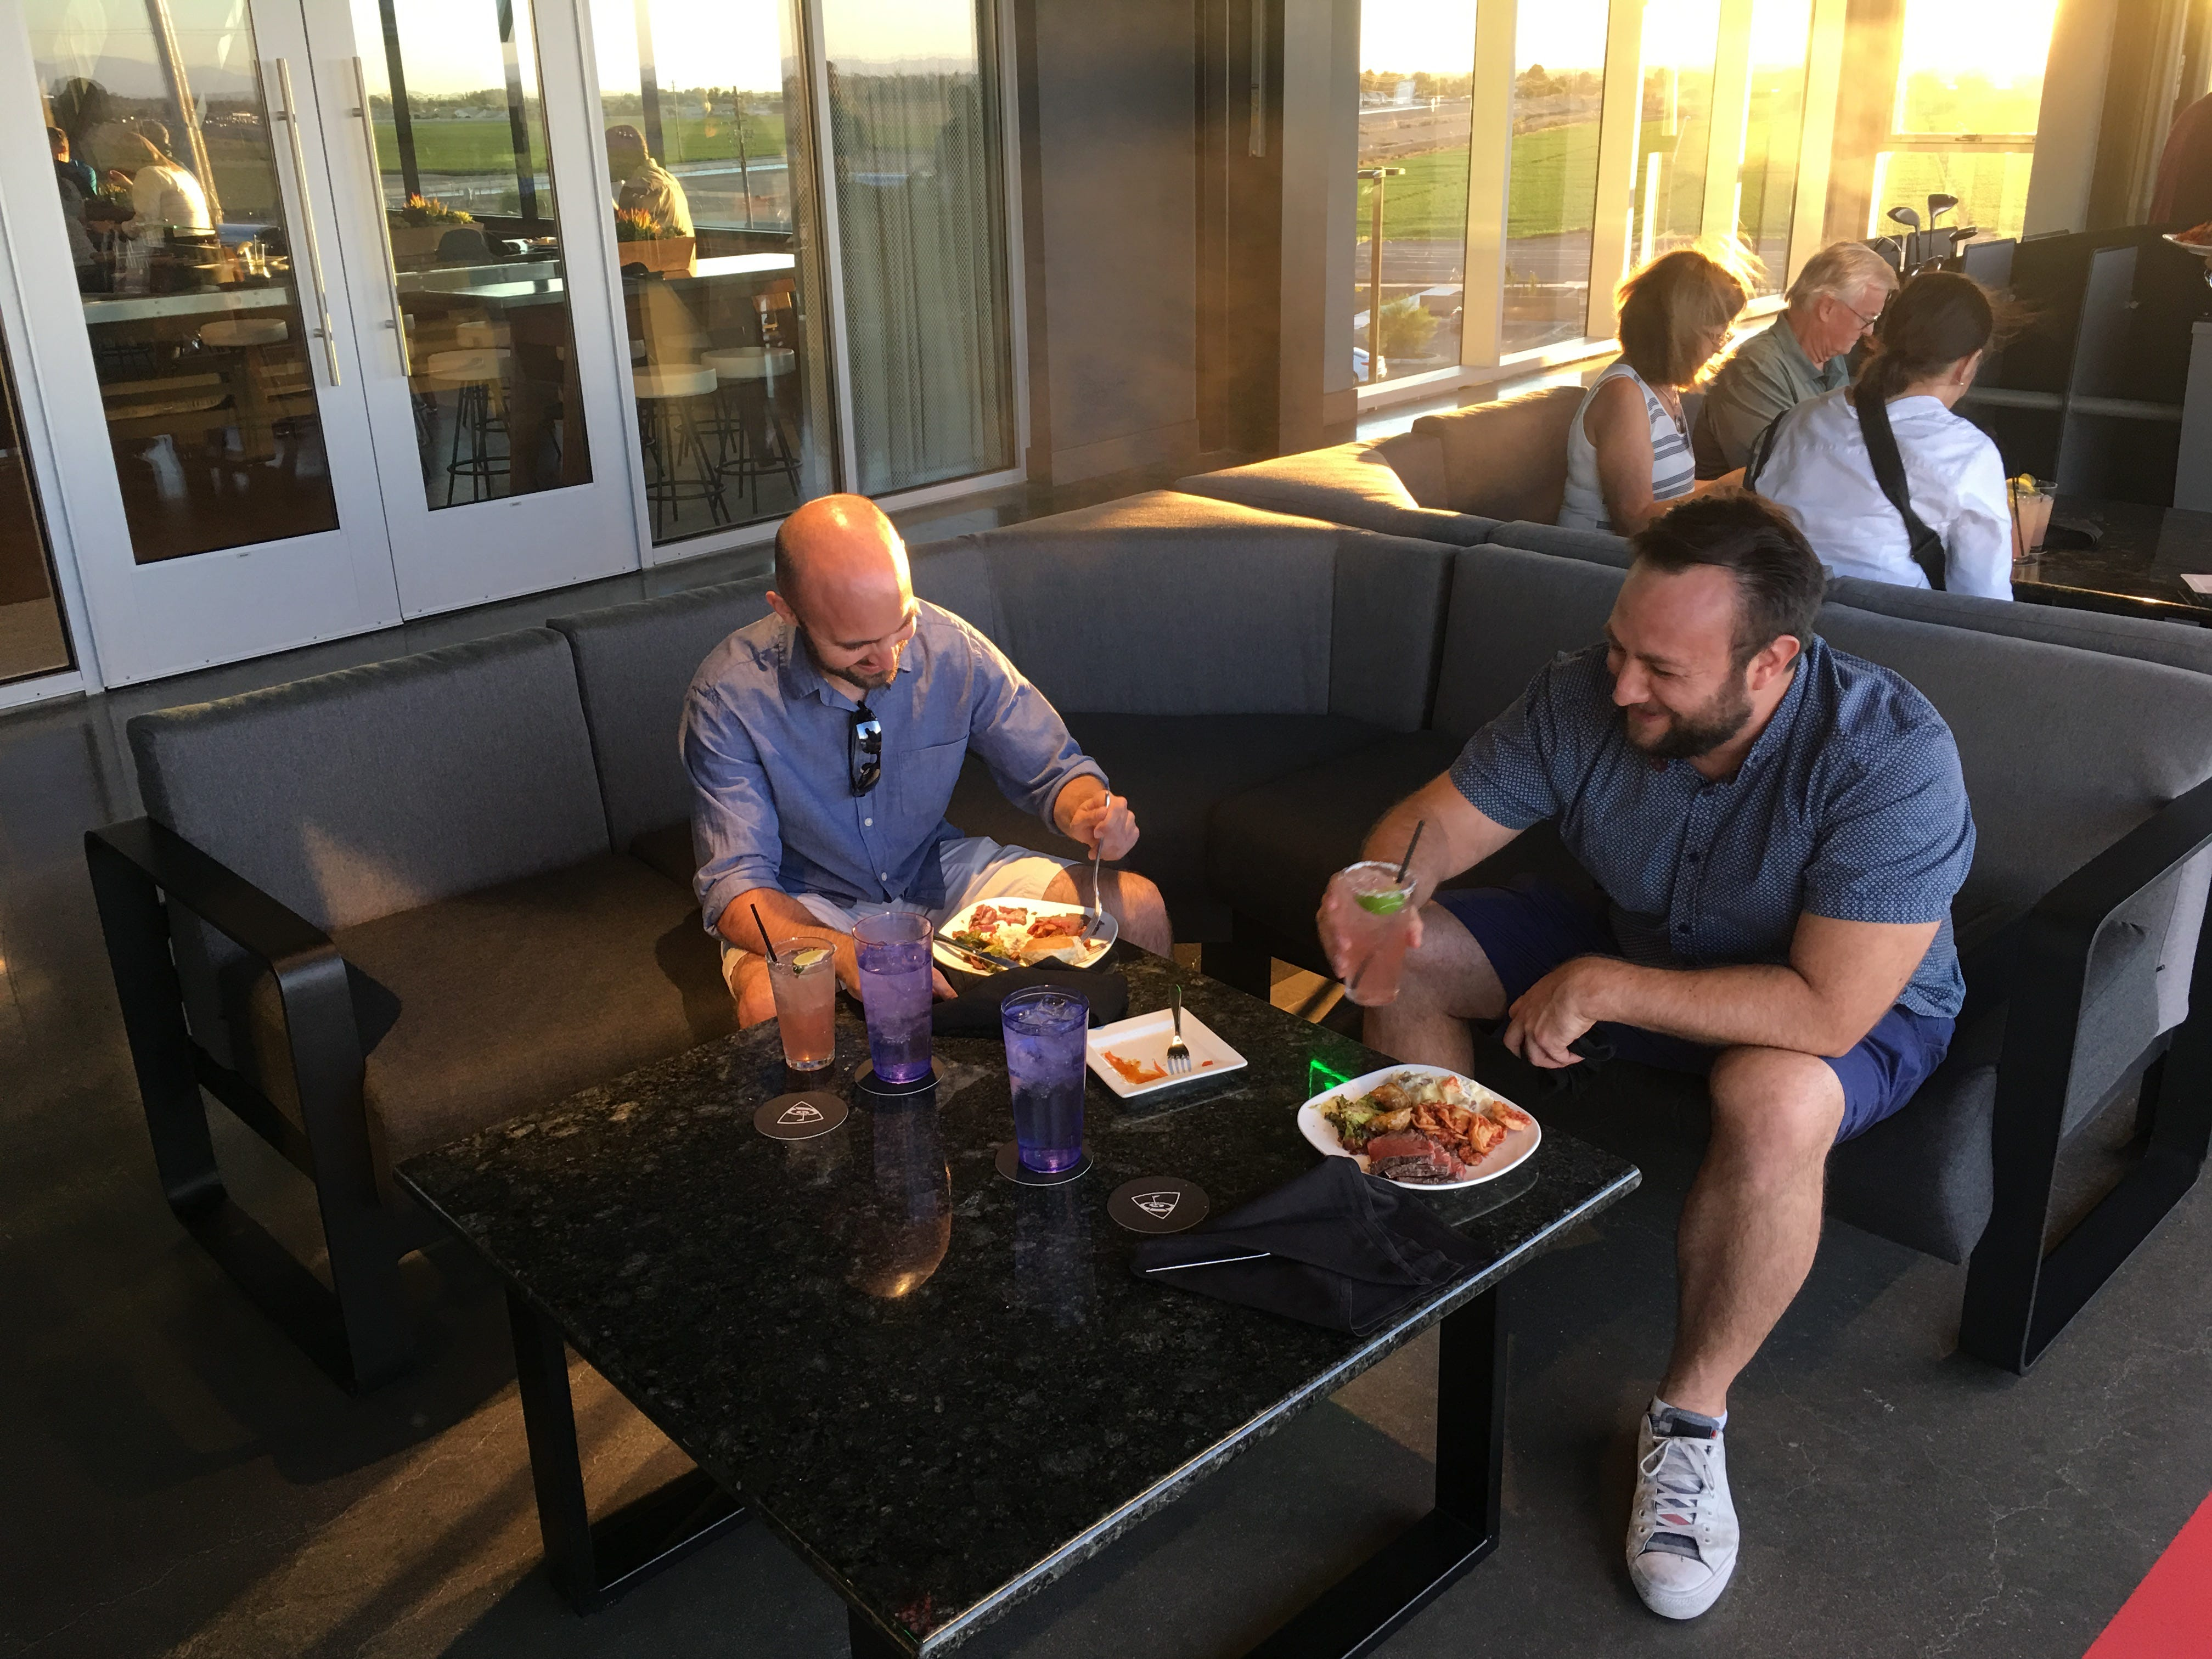 Brothers Jared and Travis Blitz enjoy a meal in one of the hitting bays at Topgolf Glendale during a tour of Topgolf's newest Valley location, Sept. 12, 2018. It's scheduled to open in September near State Farm Stadium.